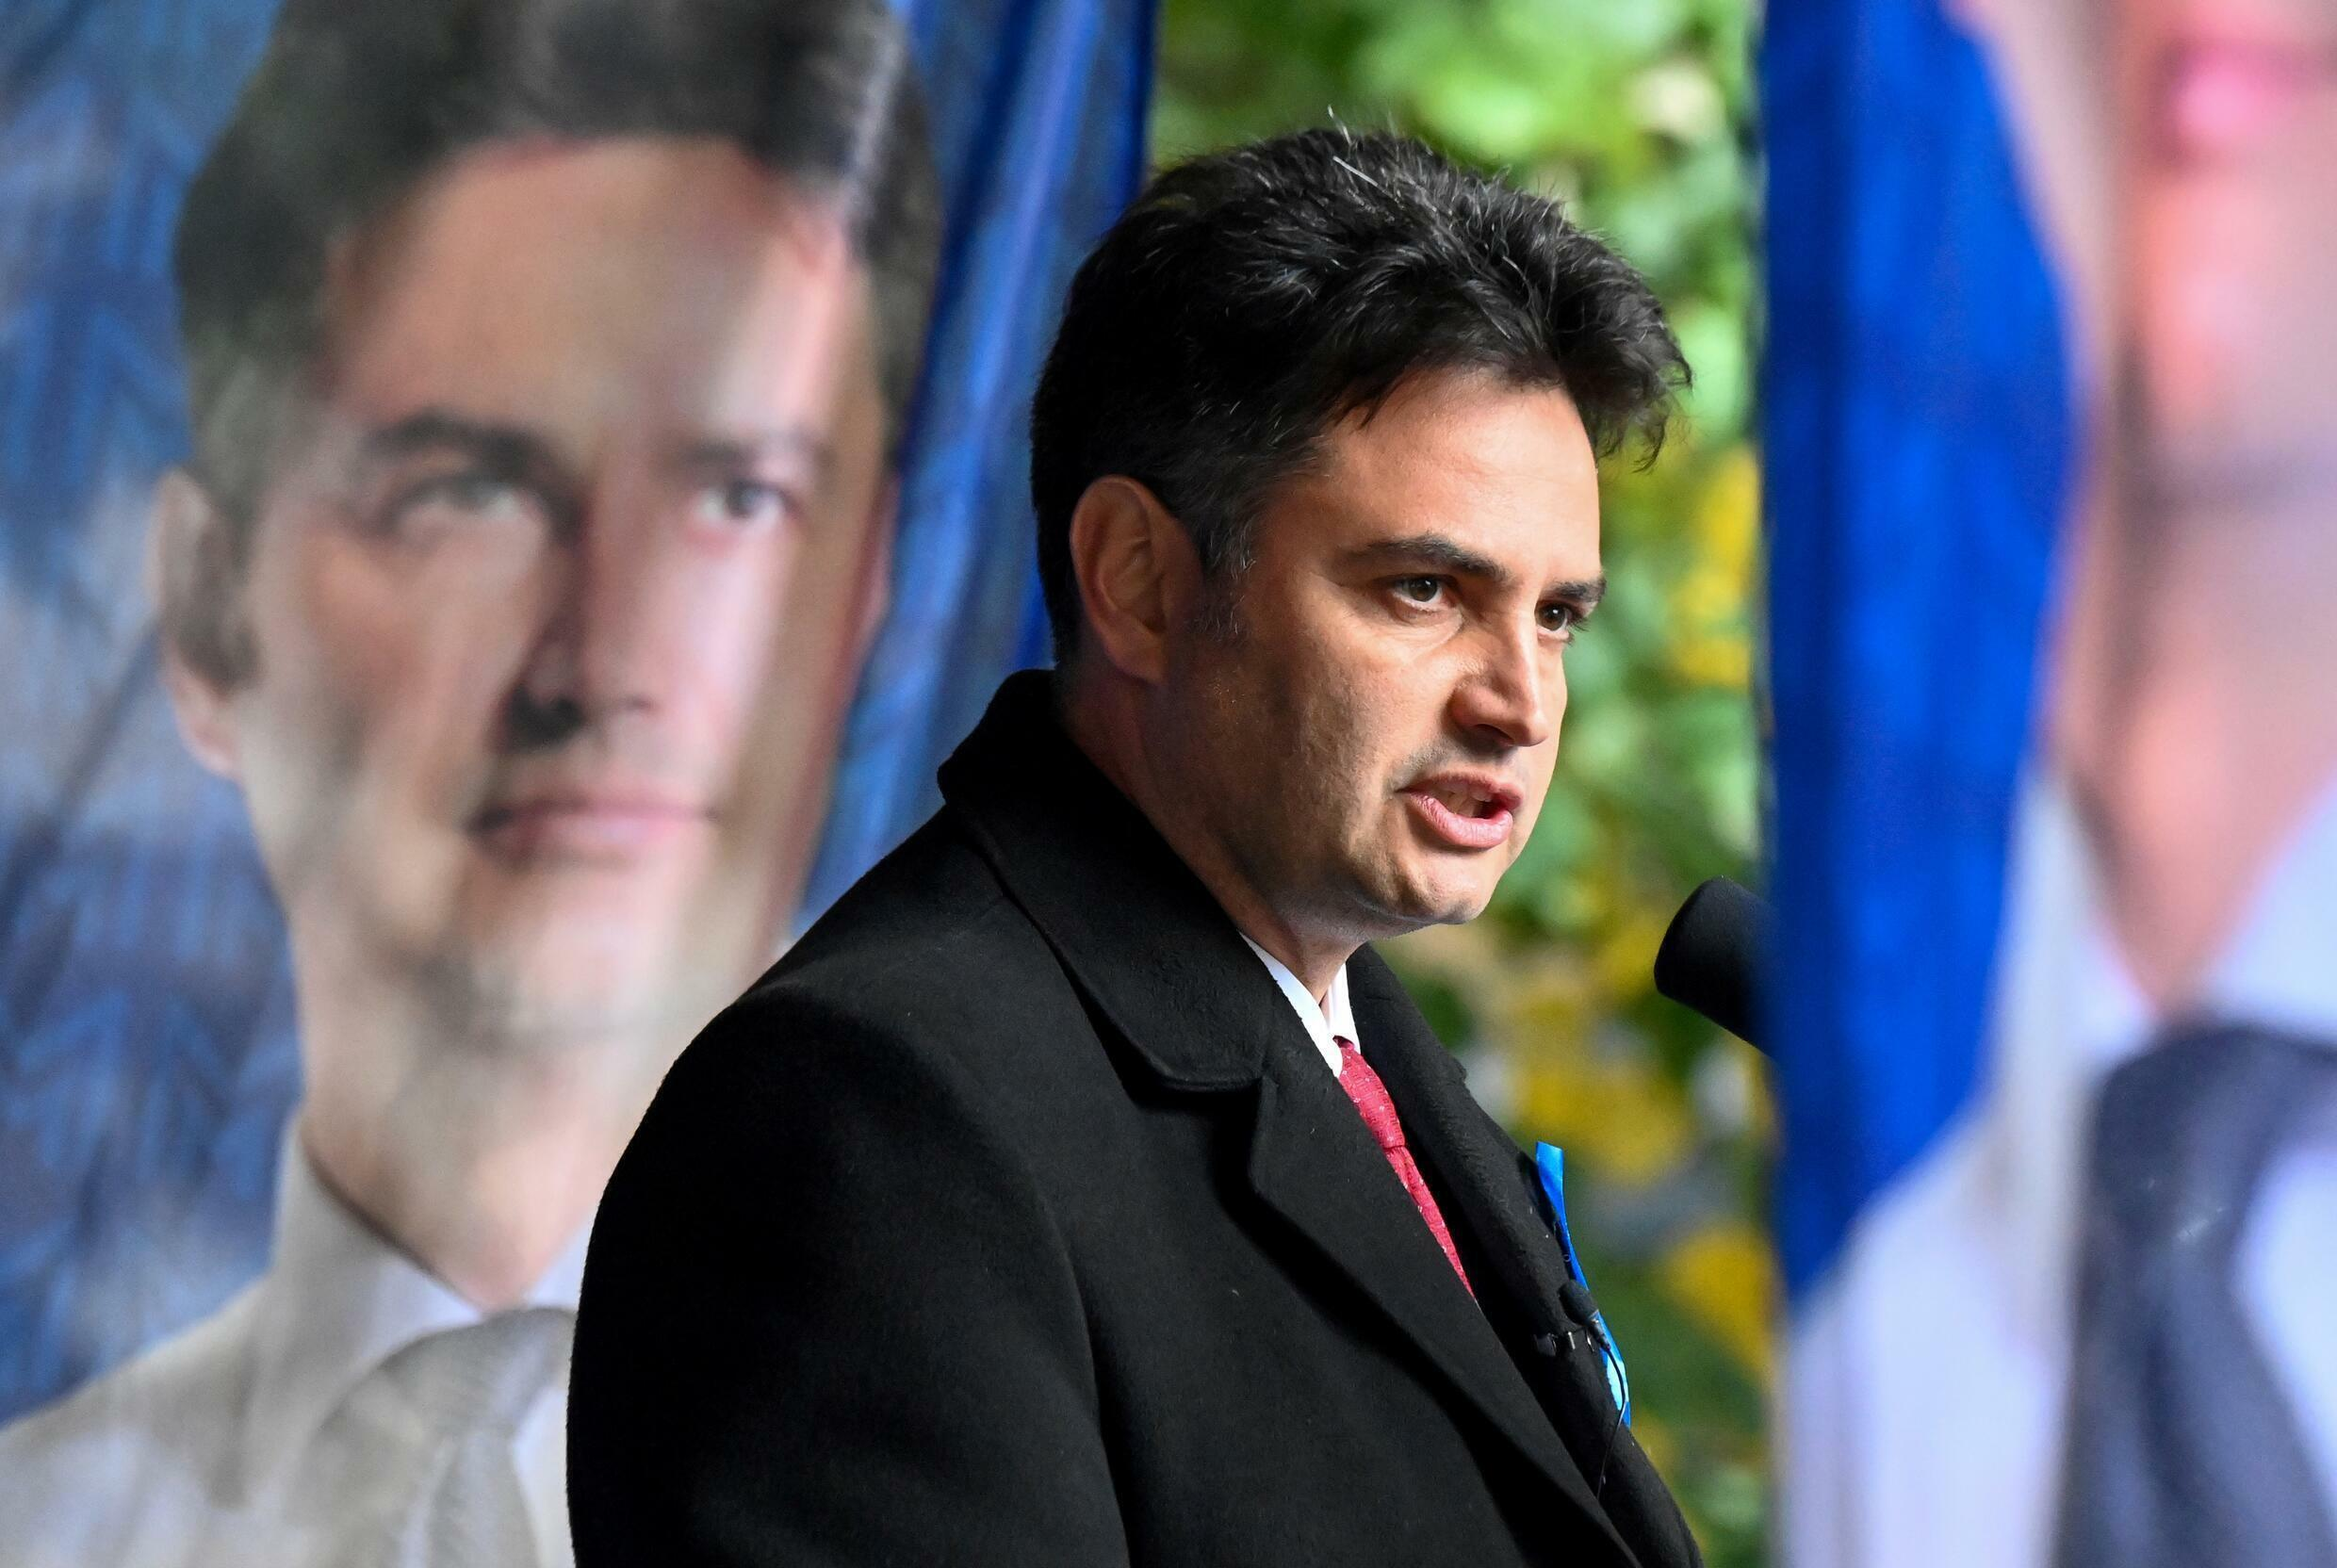 Peter Marki-Zay is set to run for prime minister next year as a unified opposition candidate